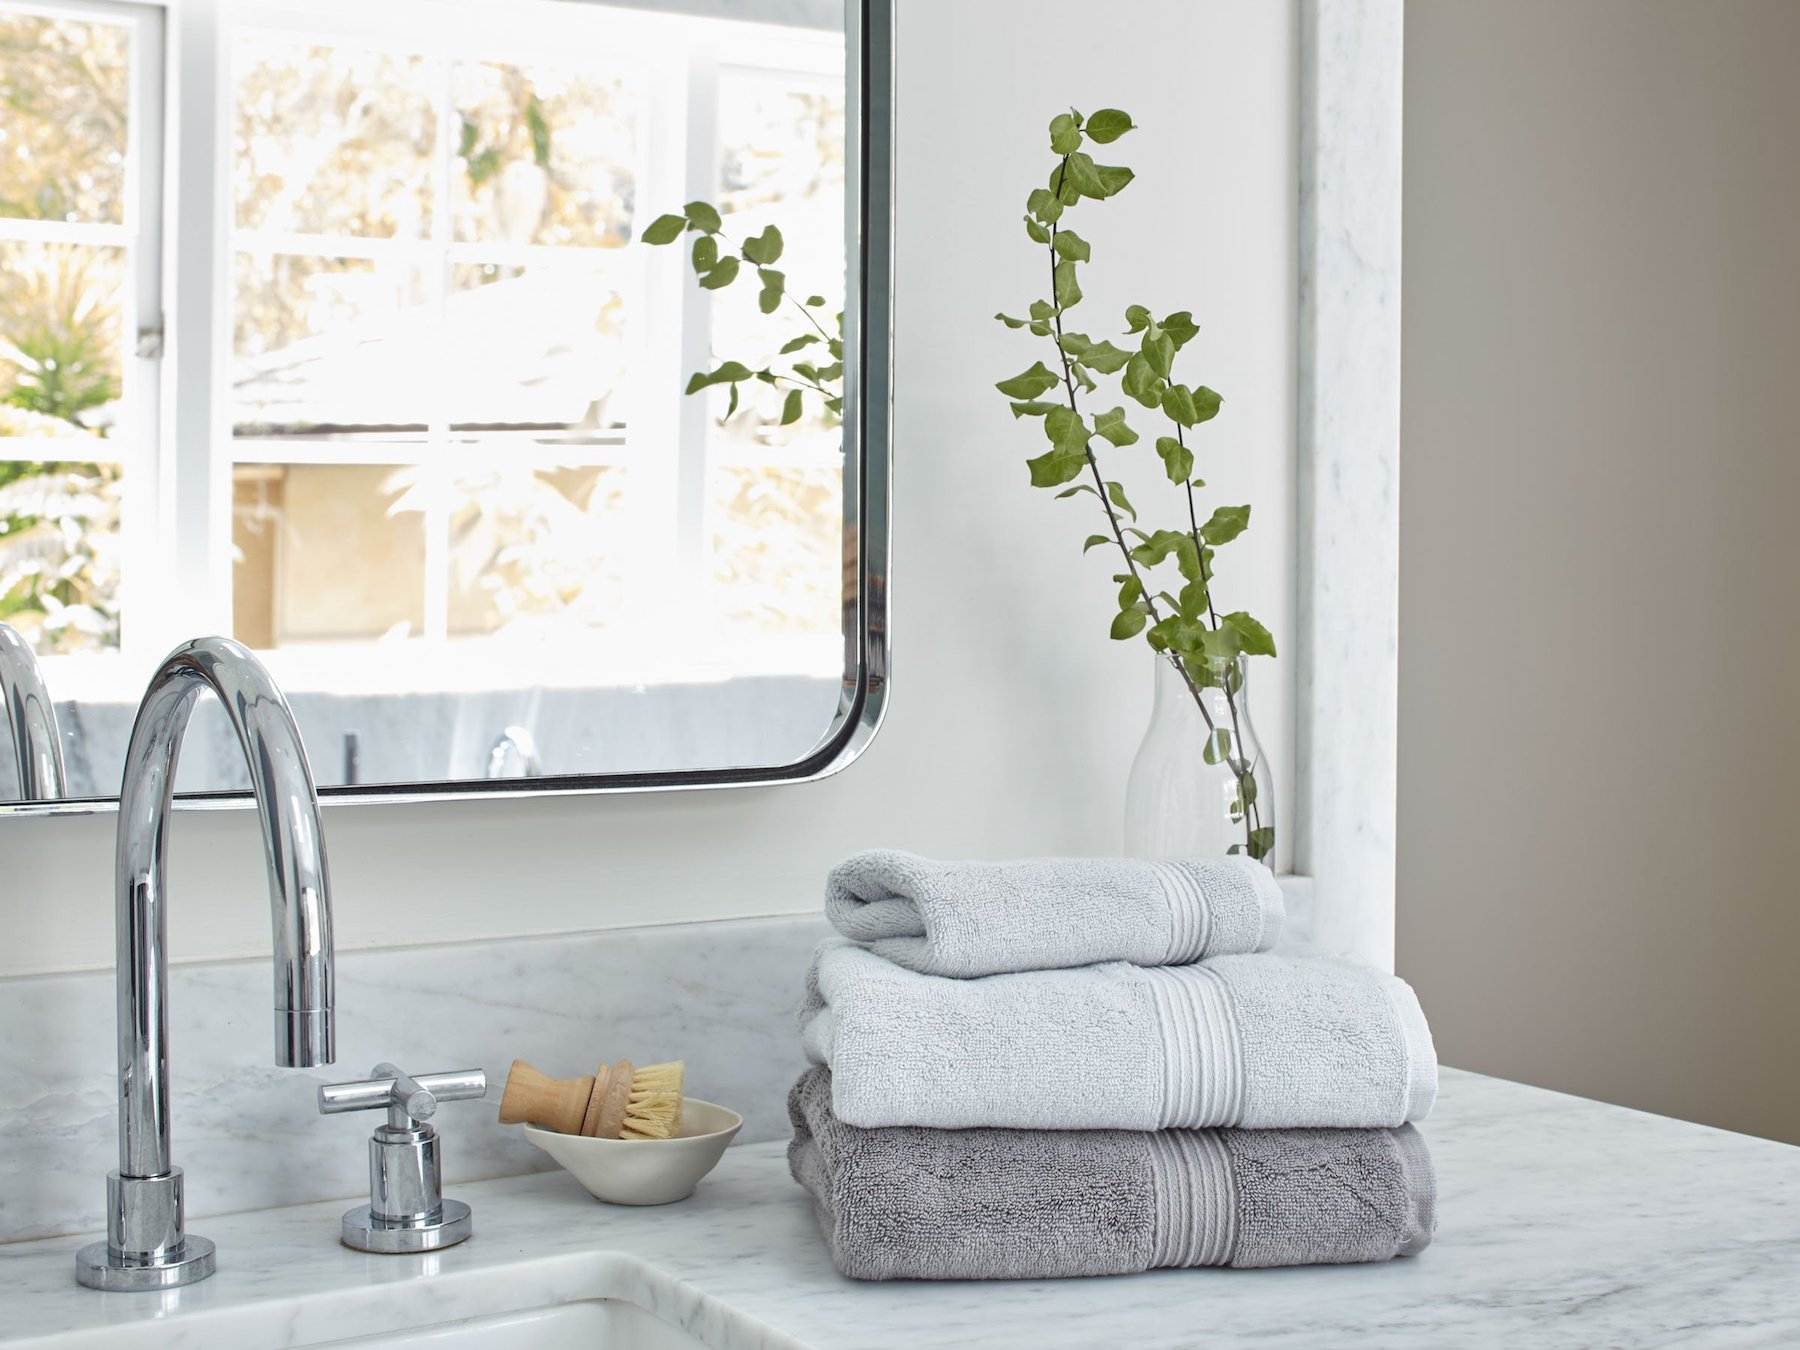 7 Best Places to Buy Hotel-Quality Bath Towels Online